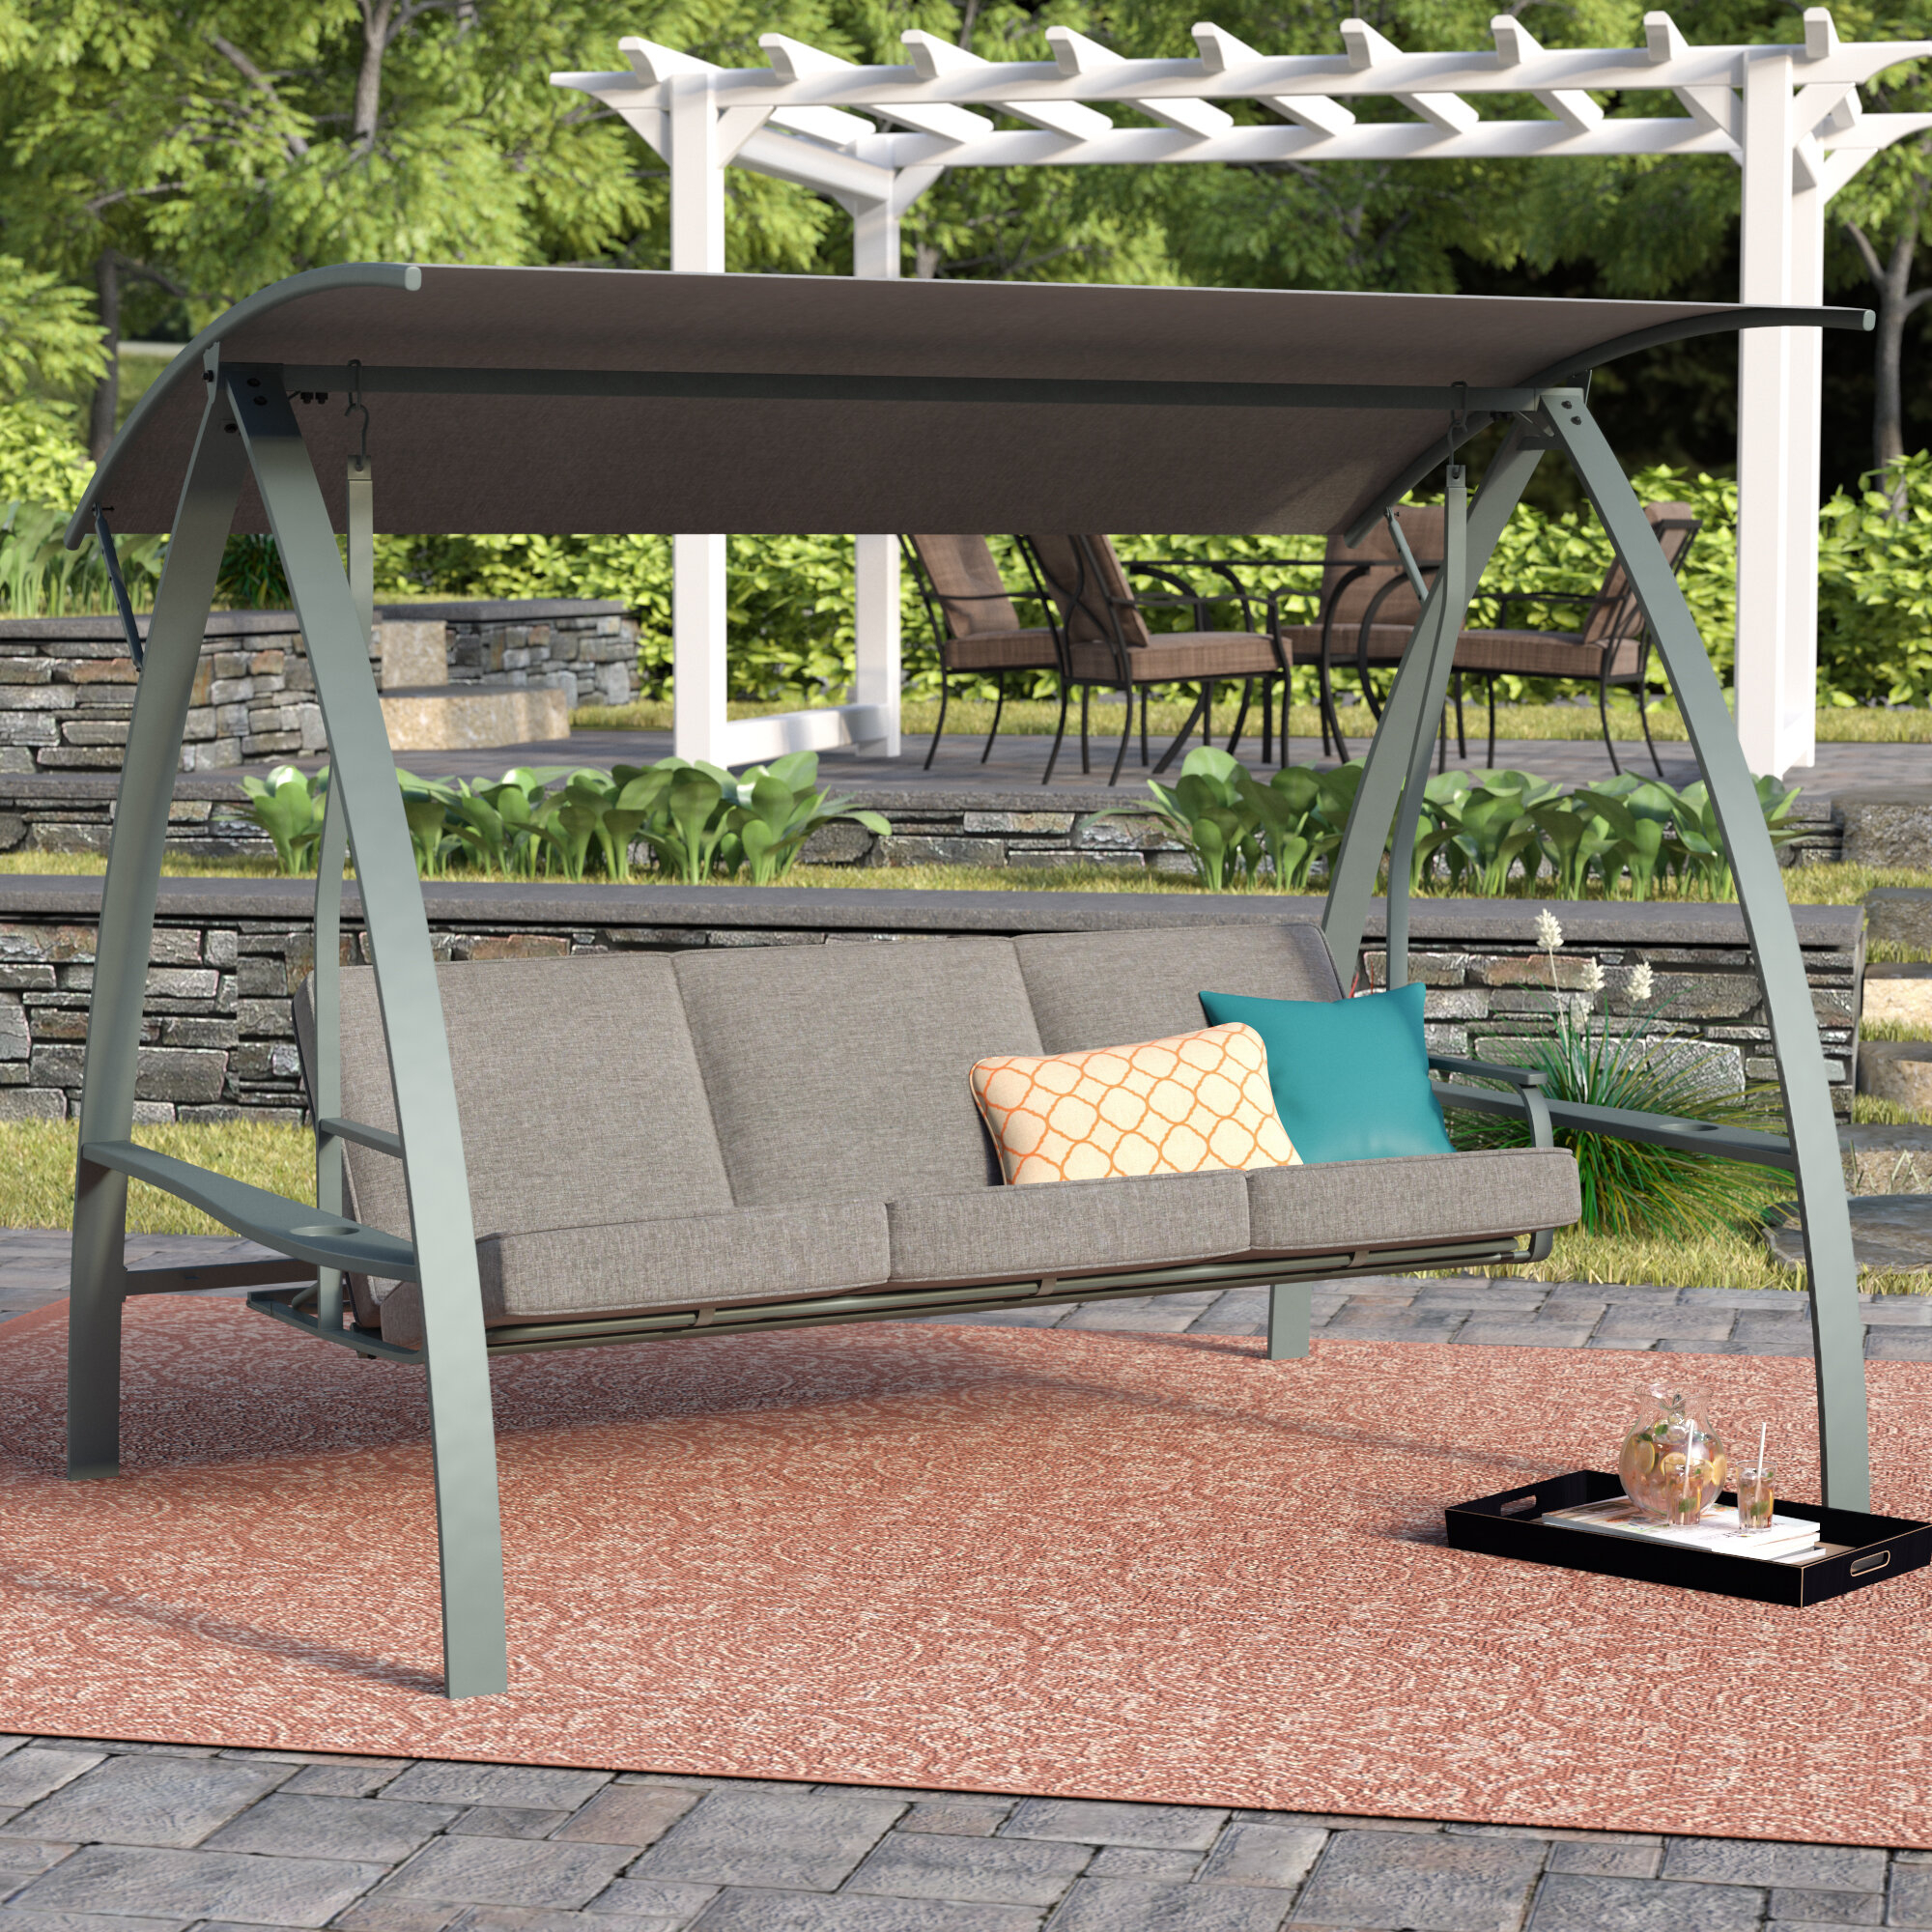 Marquette 3 Seat Daybed Porch Swing With Stand Intended For Daybed Porch Swings With Stand (View 3 of 25)